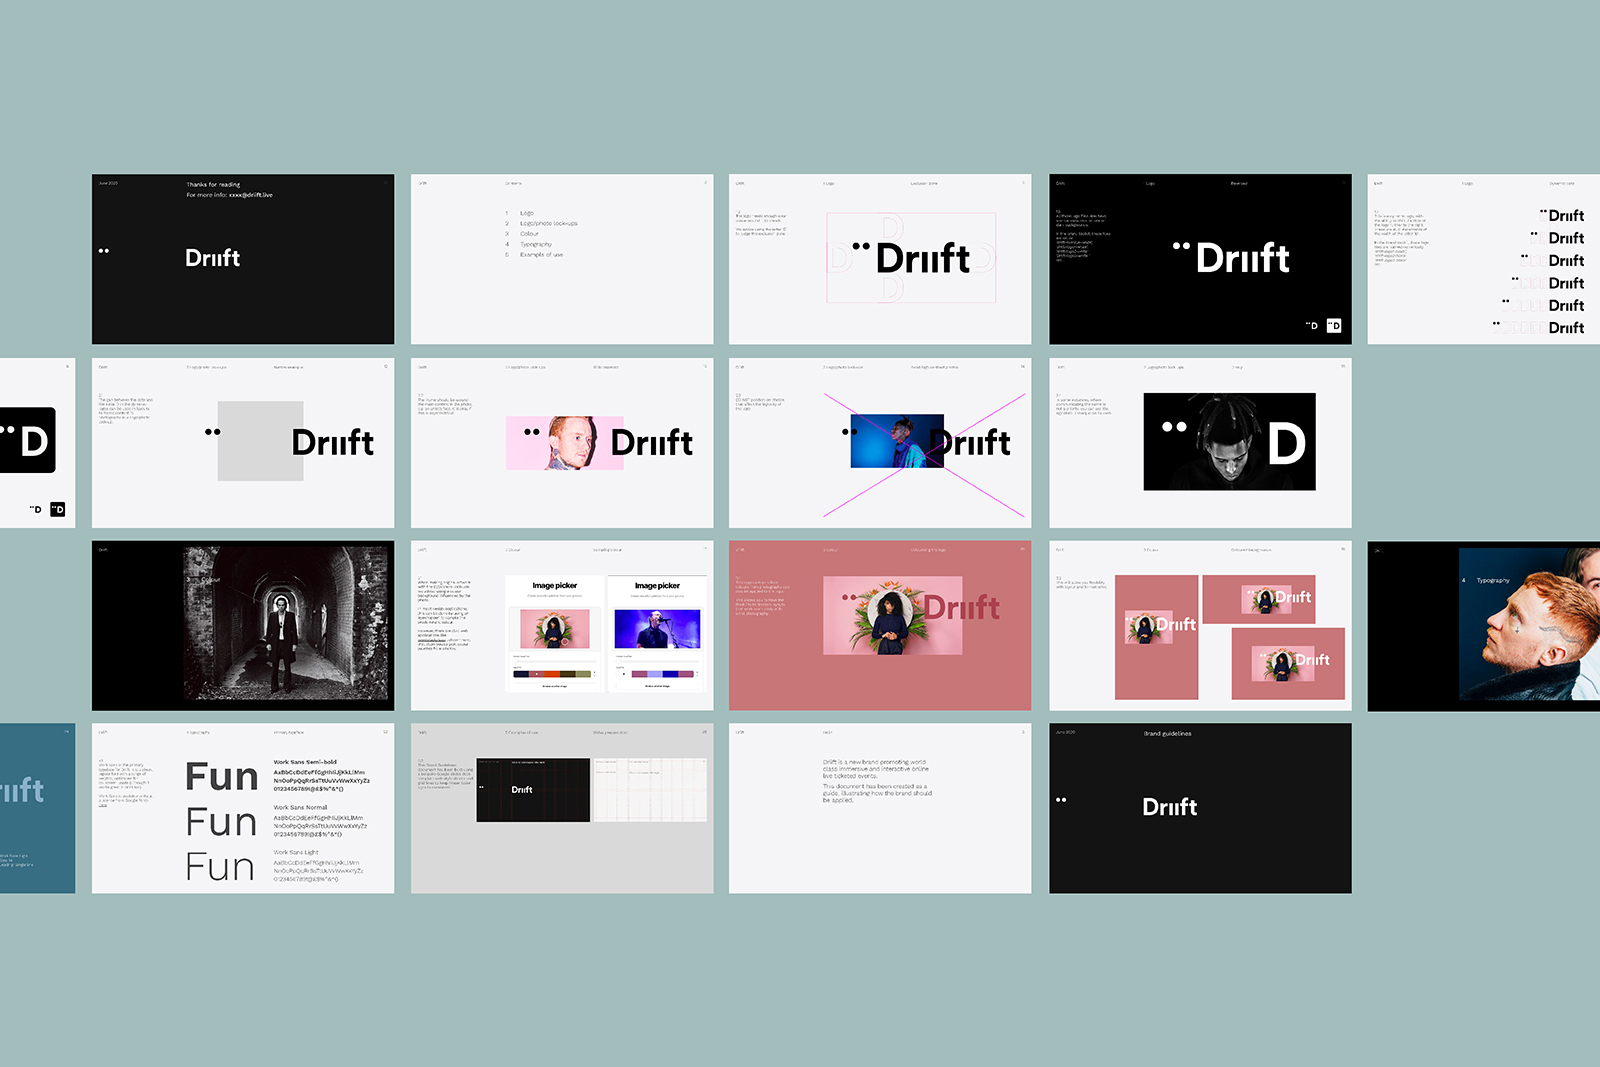 Driift-brand-guides